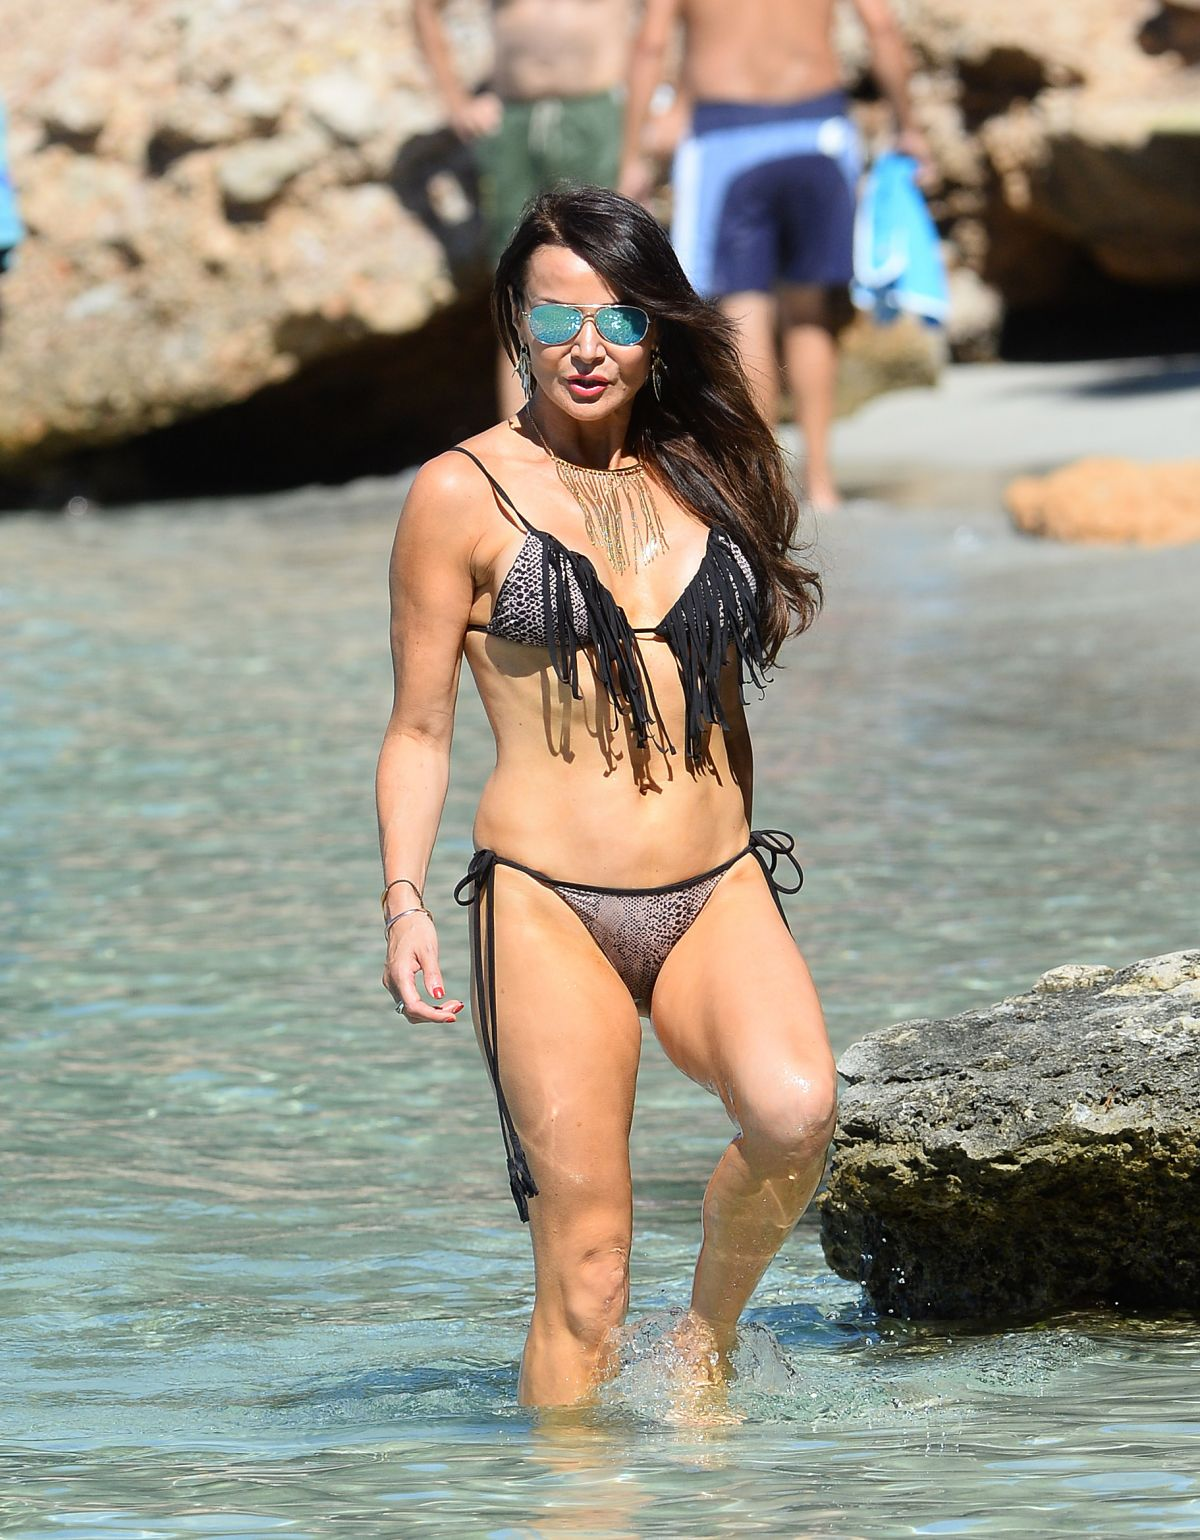 Alessandra ambrosio out in santa monica,Katharina Bo Llig Leaked - Over 200 Photos Sex clip Duckie thot nude sexy photos,Luna leung naked